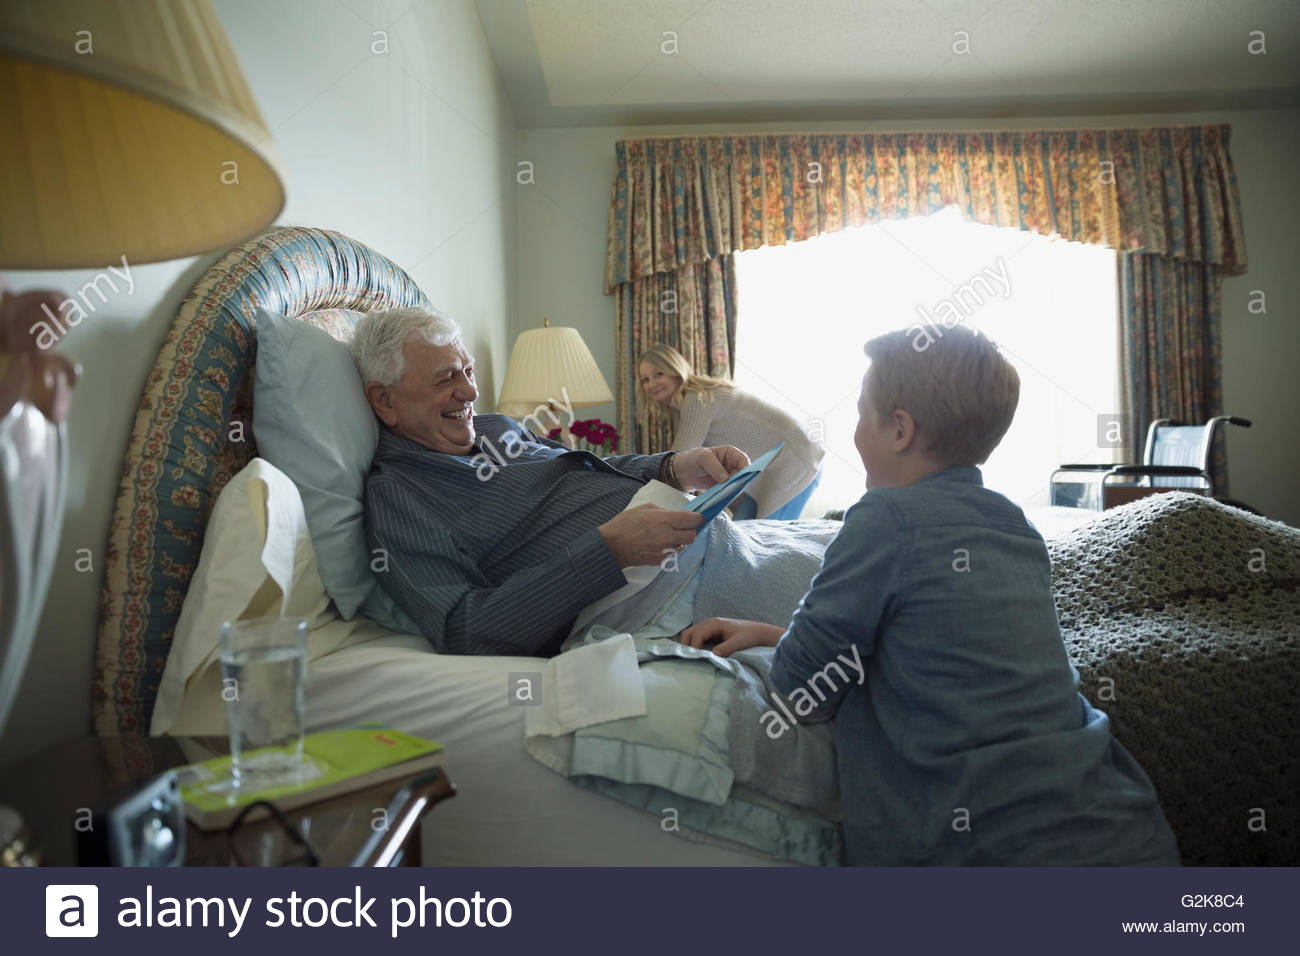 Grandson visiting grandfather resting in bed - Stock Image